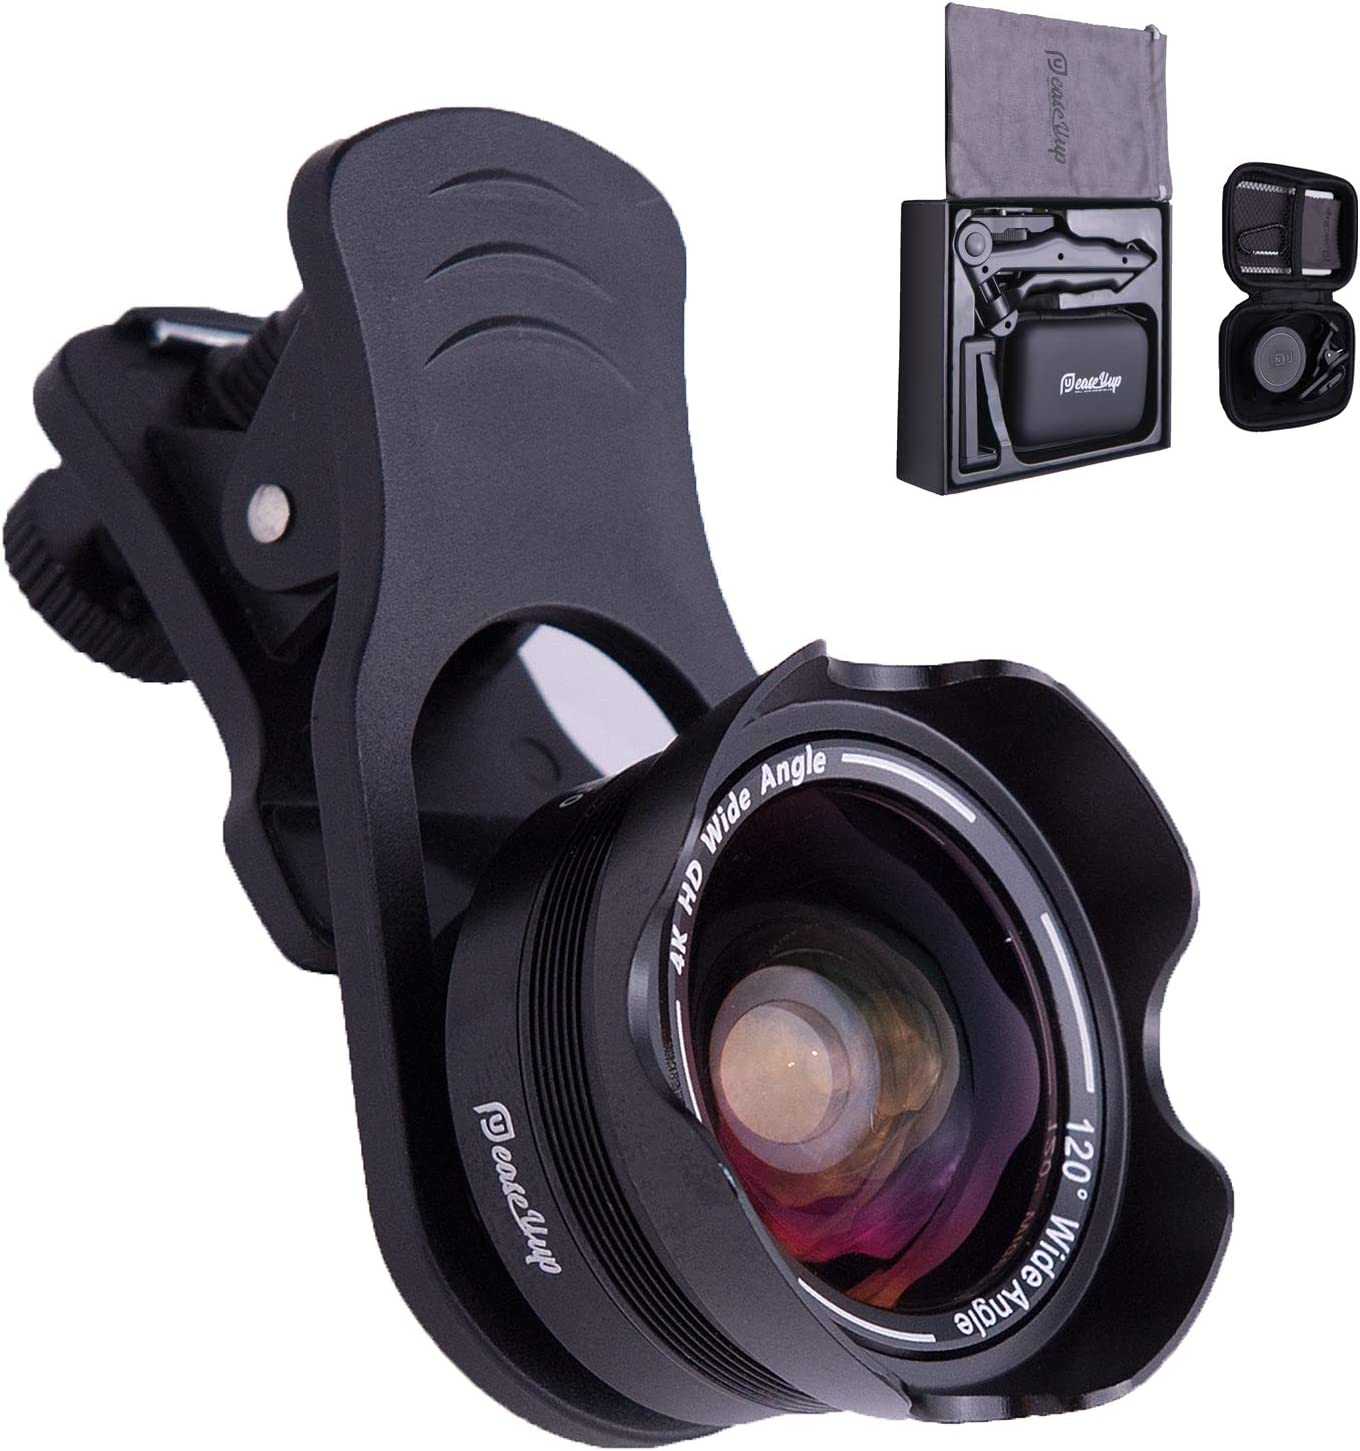 Wide Angle, Macro Lens for iPhone X XR XS Max 8 7 6S Plus-HD Cell Phone Camera Lens Kit by easeUup-Bluetooth Universal Remote, Phone Tripod Holder-All You Need in 1 Case to Go